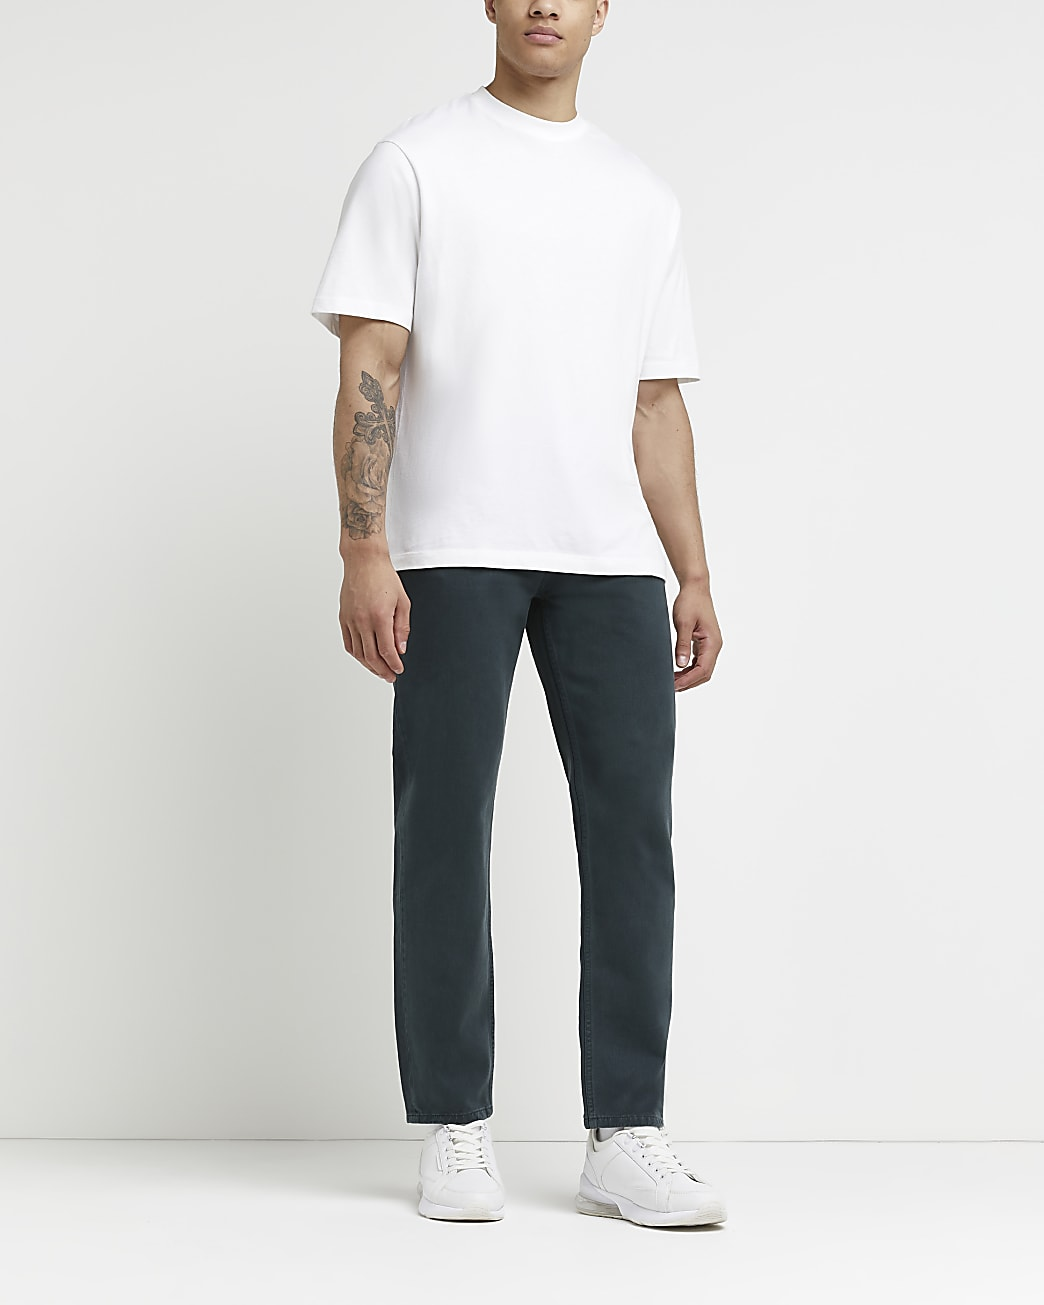 Green relaxed fit jeans